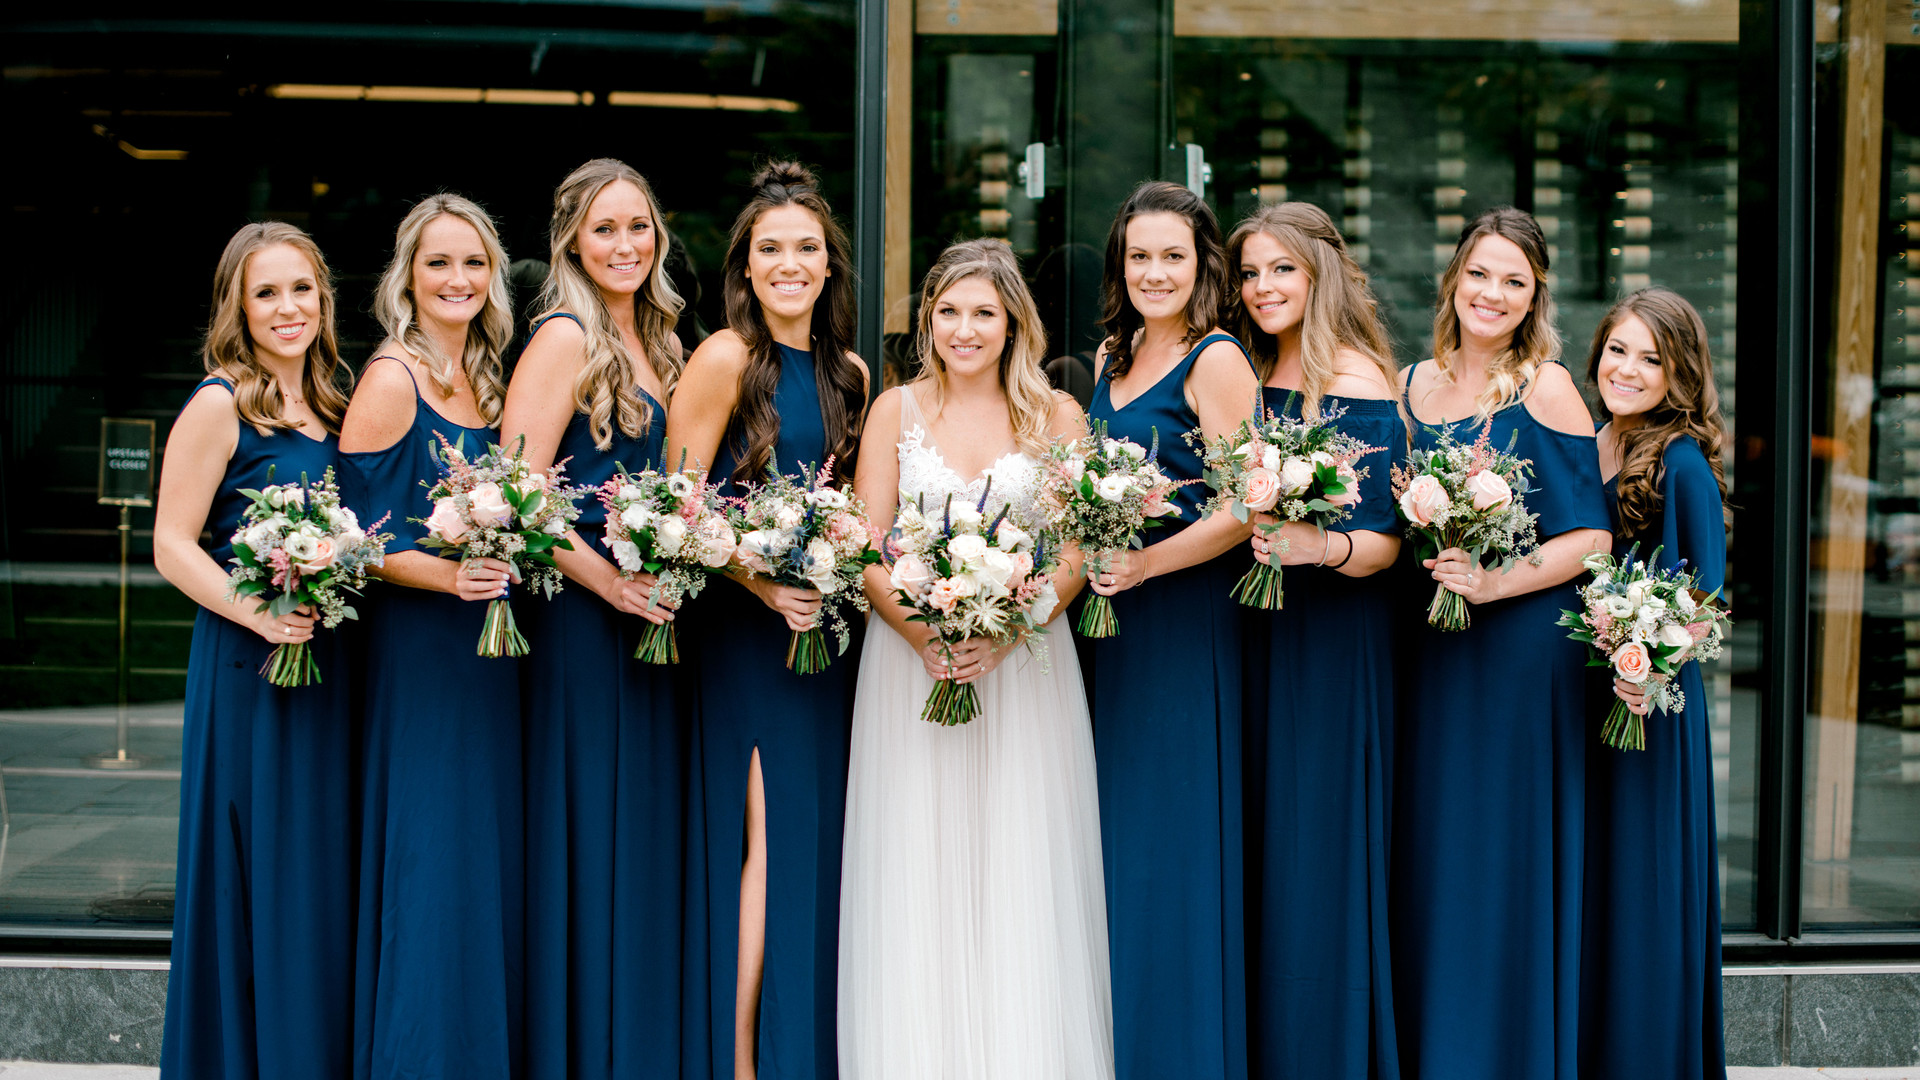 Allie and Bridesmaids.jpg